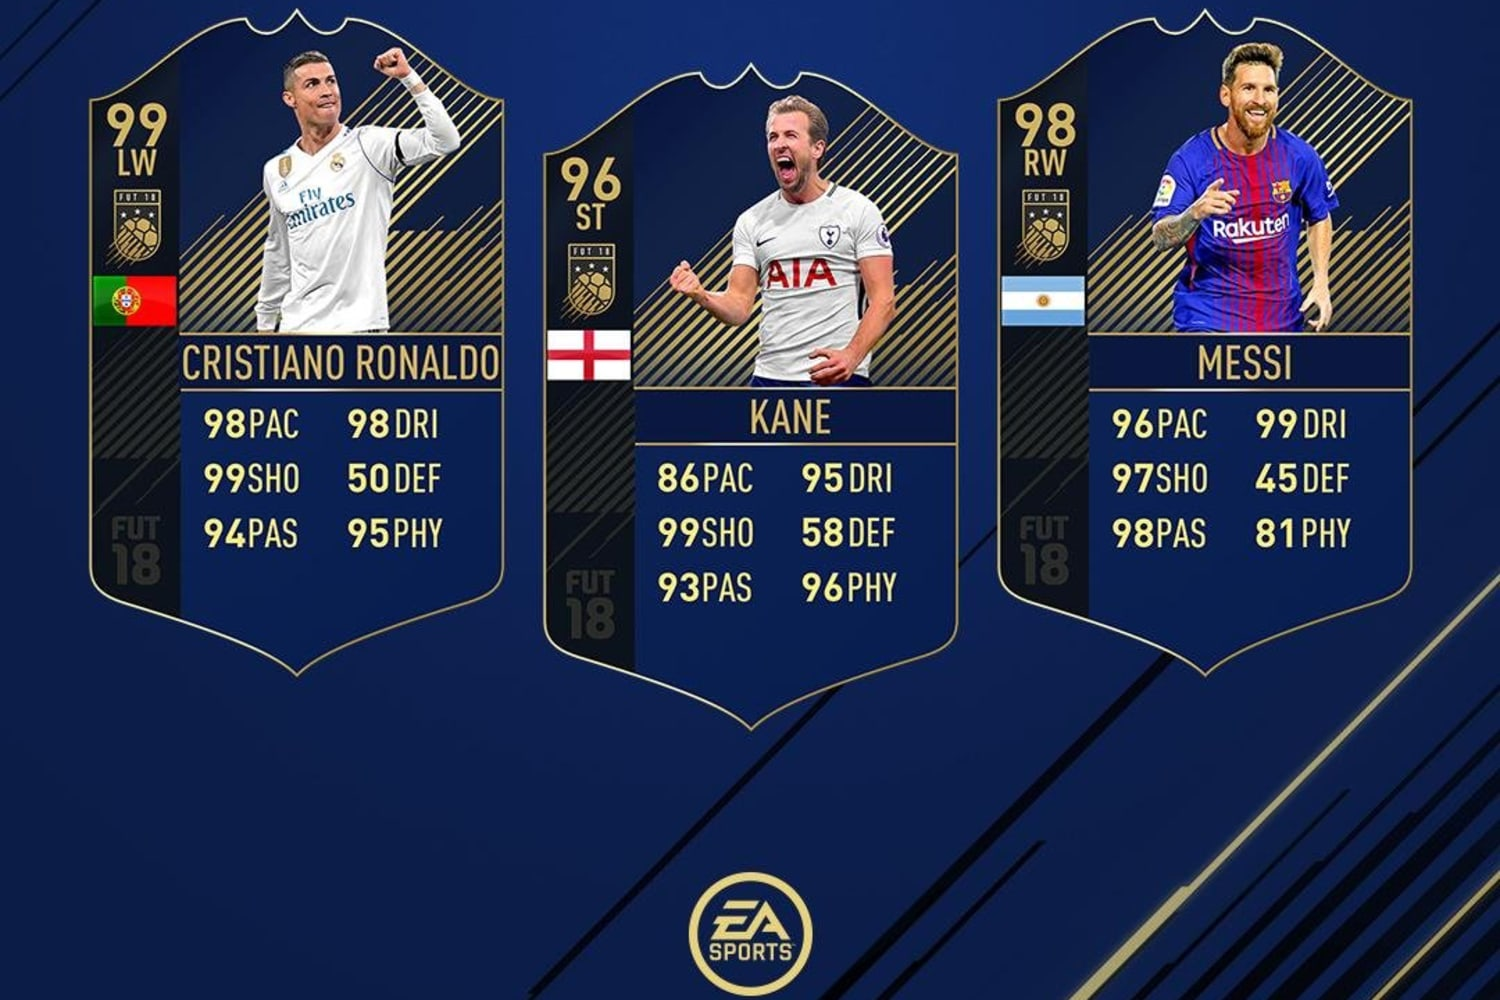 FIFA 18 Team Of The Year: Who is in the TOTY XI?